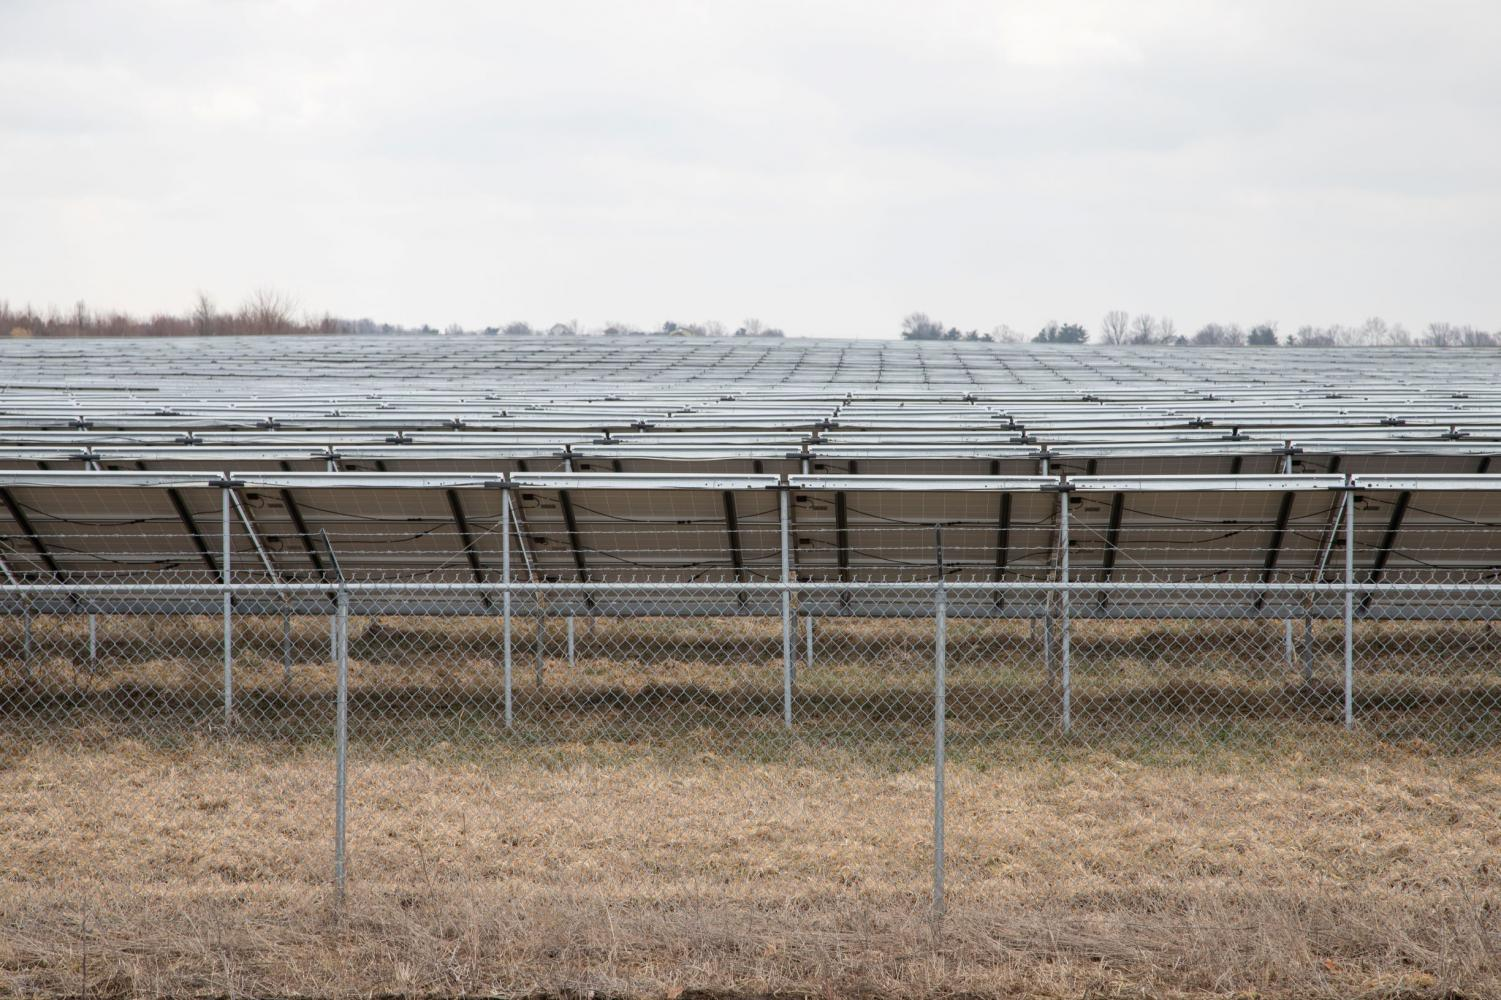 The University Solar Farm covers 20.8 acres and is located along the south side of Windsor Road between First Street and the railroad tracks.